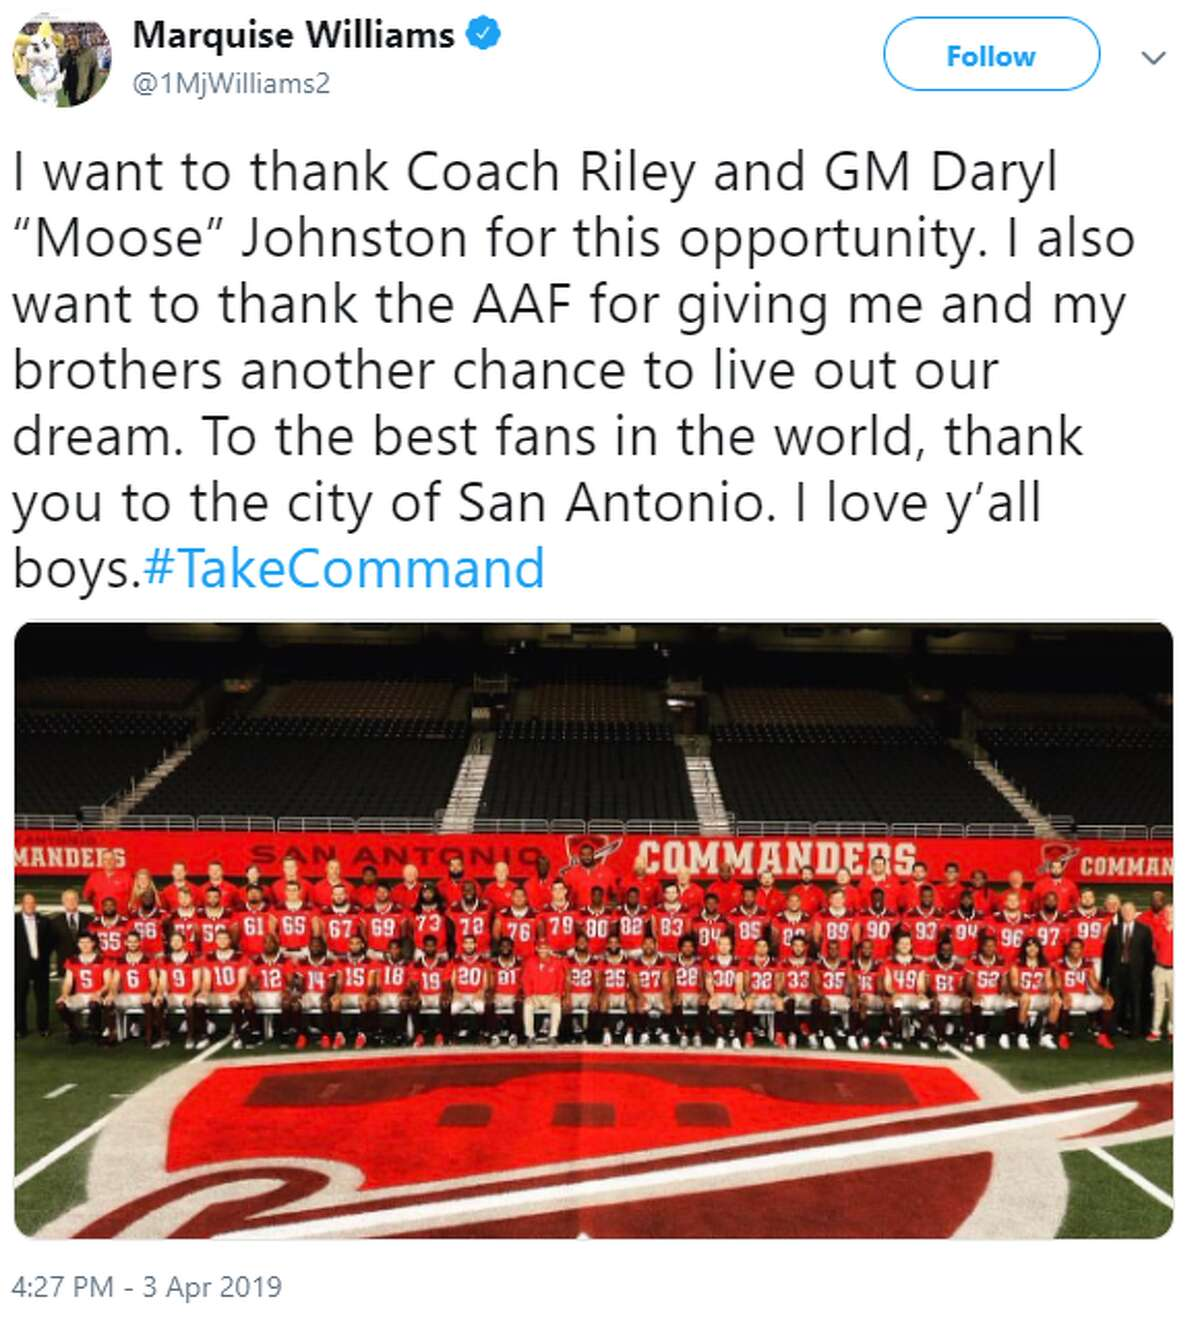 @1MjWilliams2: I want to thank Coach Riley and GM Daryl